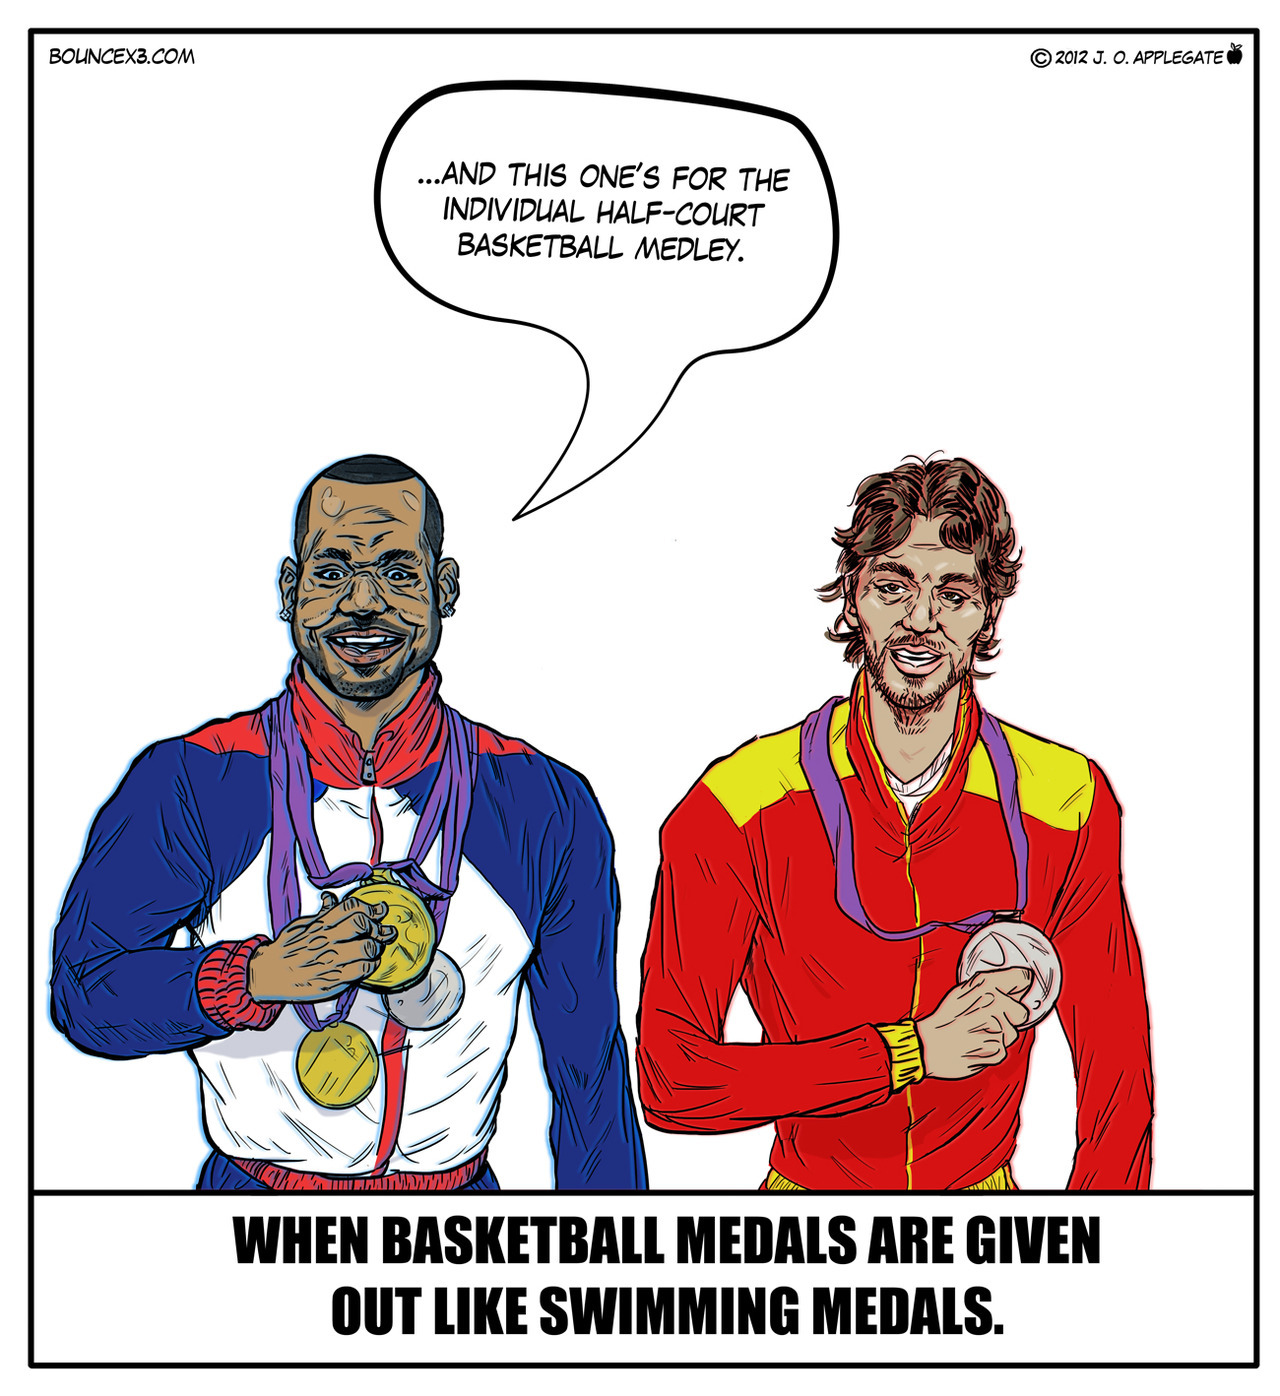 When basketball medals are given out like swimming medals by @Bouncex3